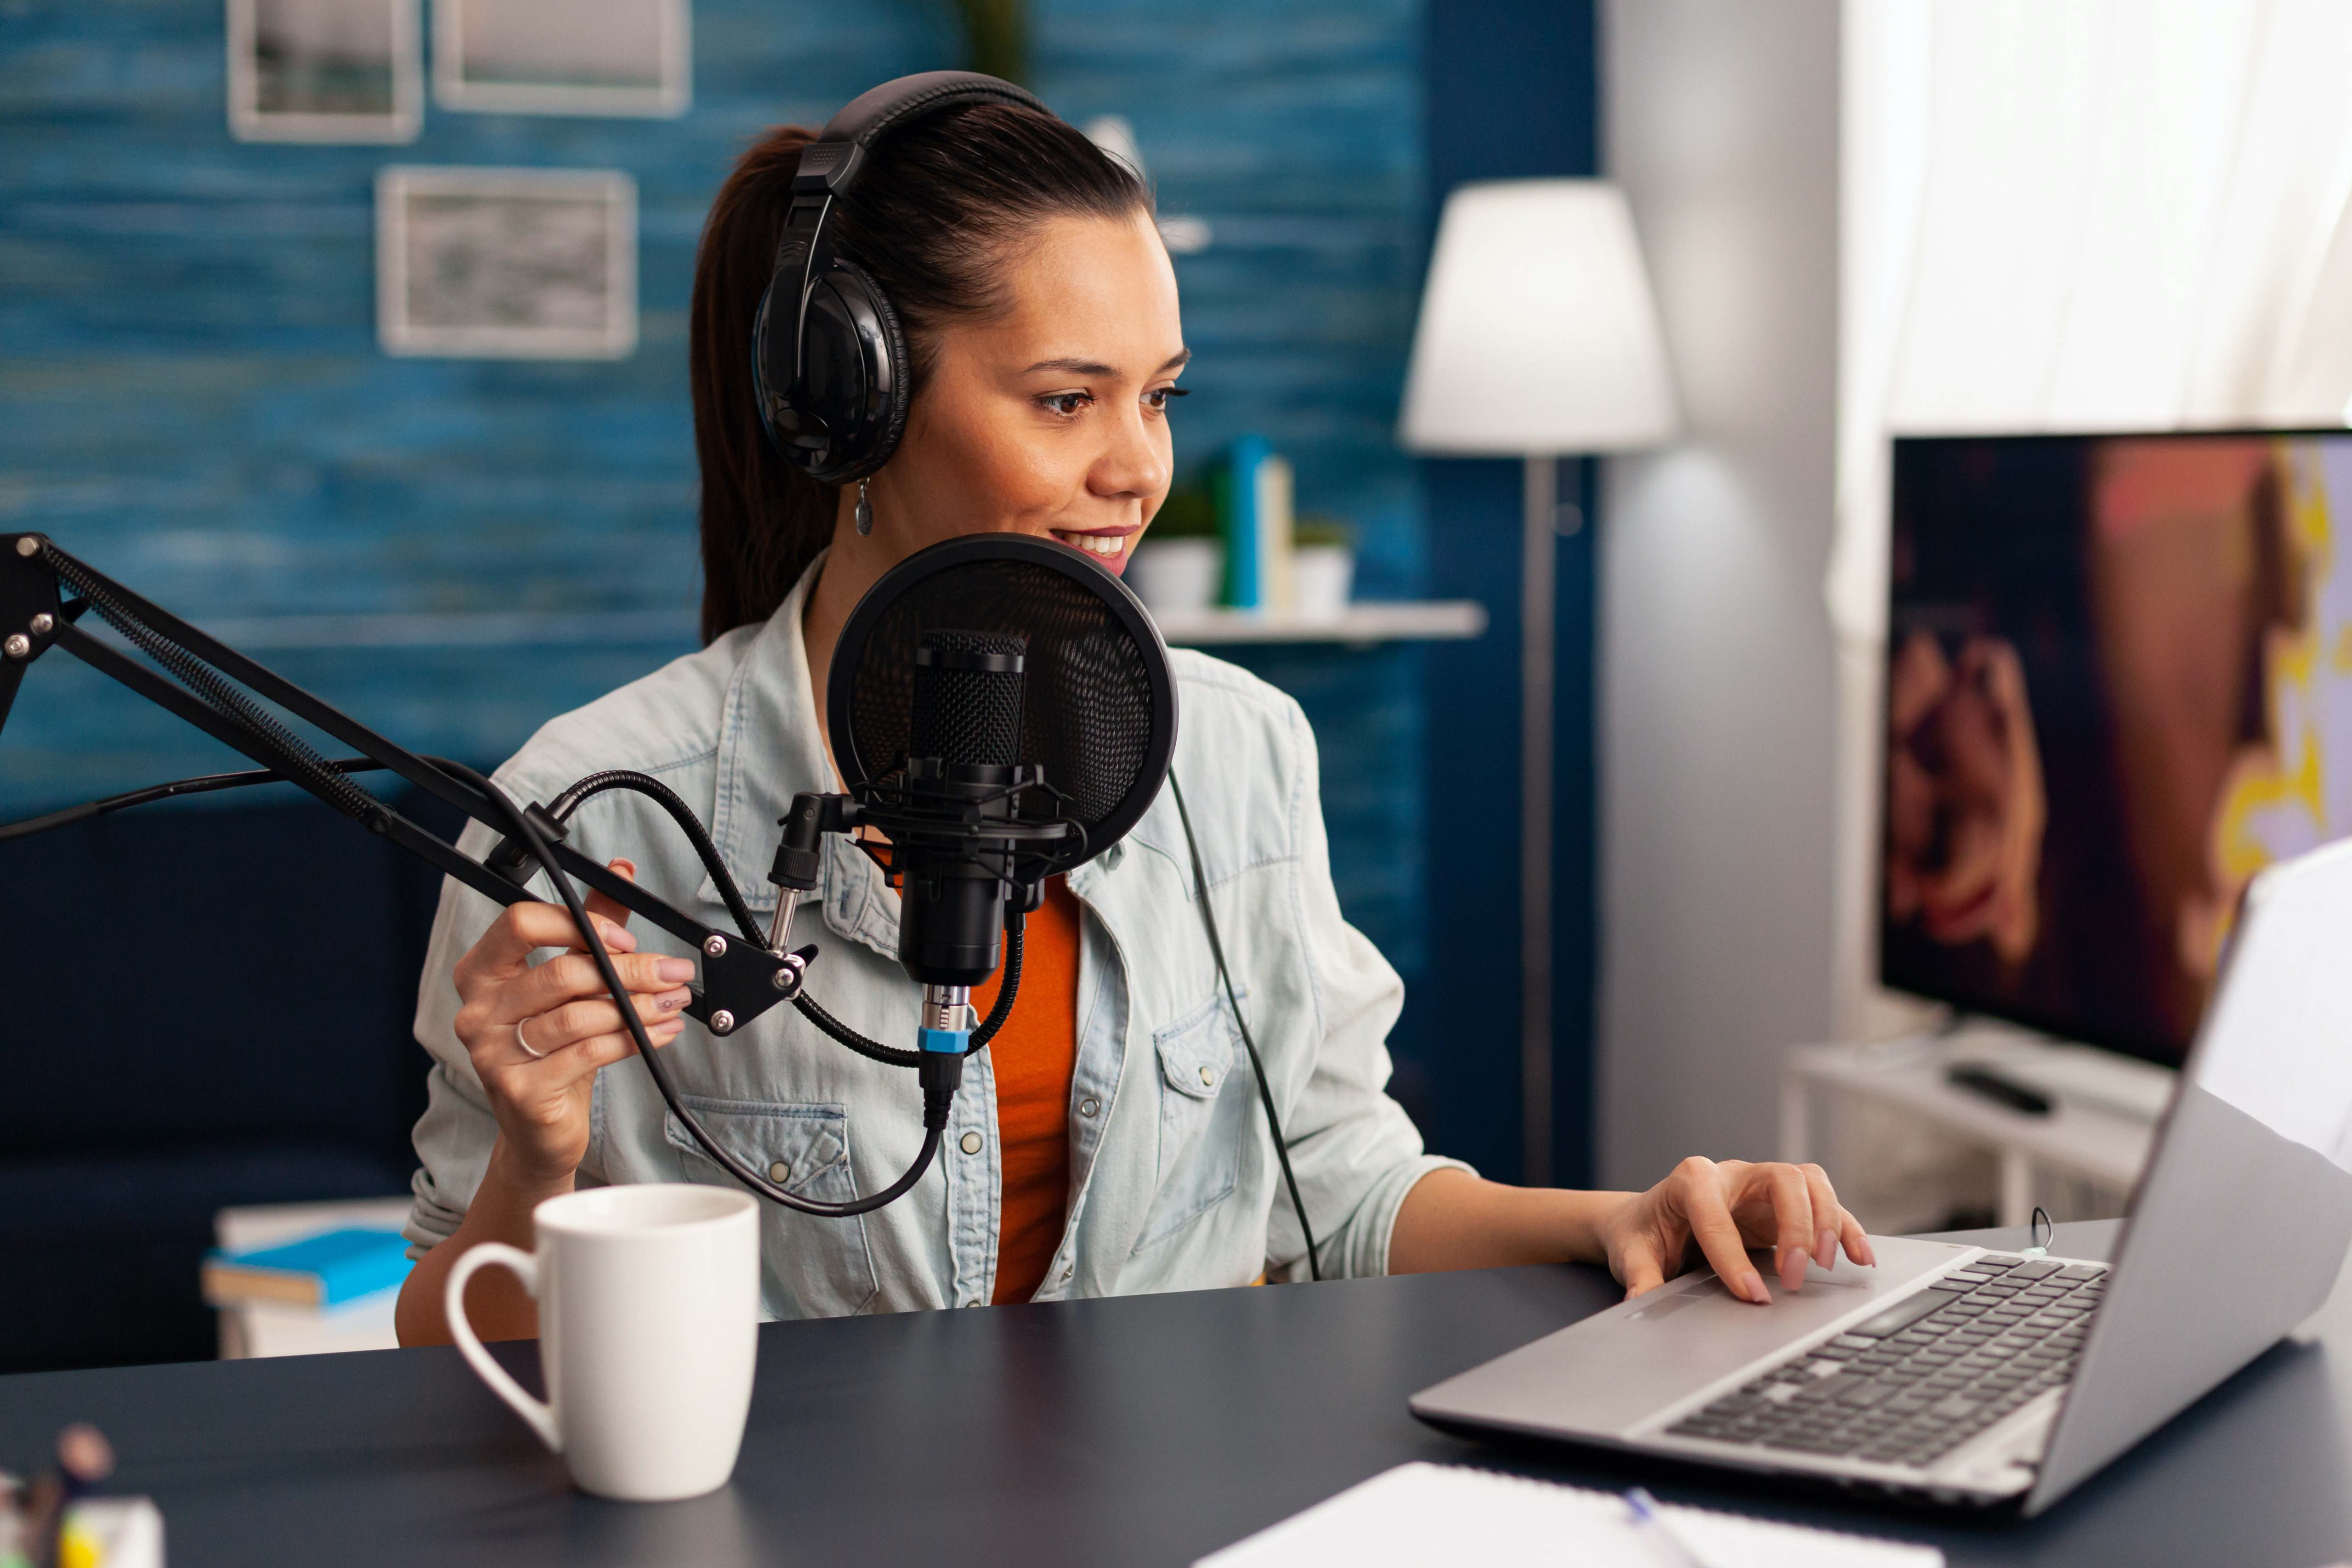 Woman podcasting with mic, headphones, computer and a cup of coffee at a desk